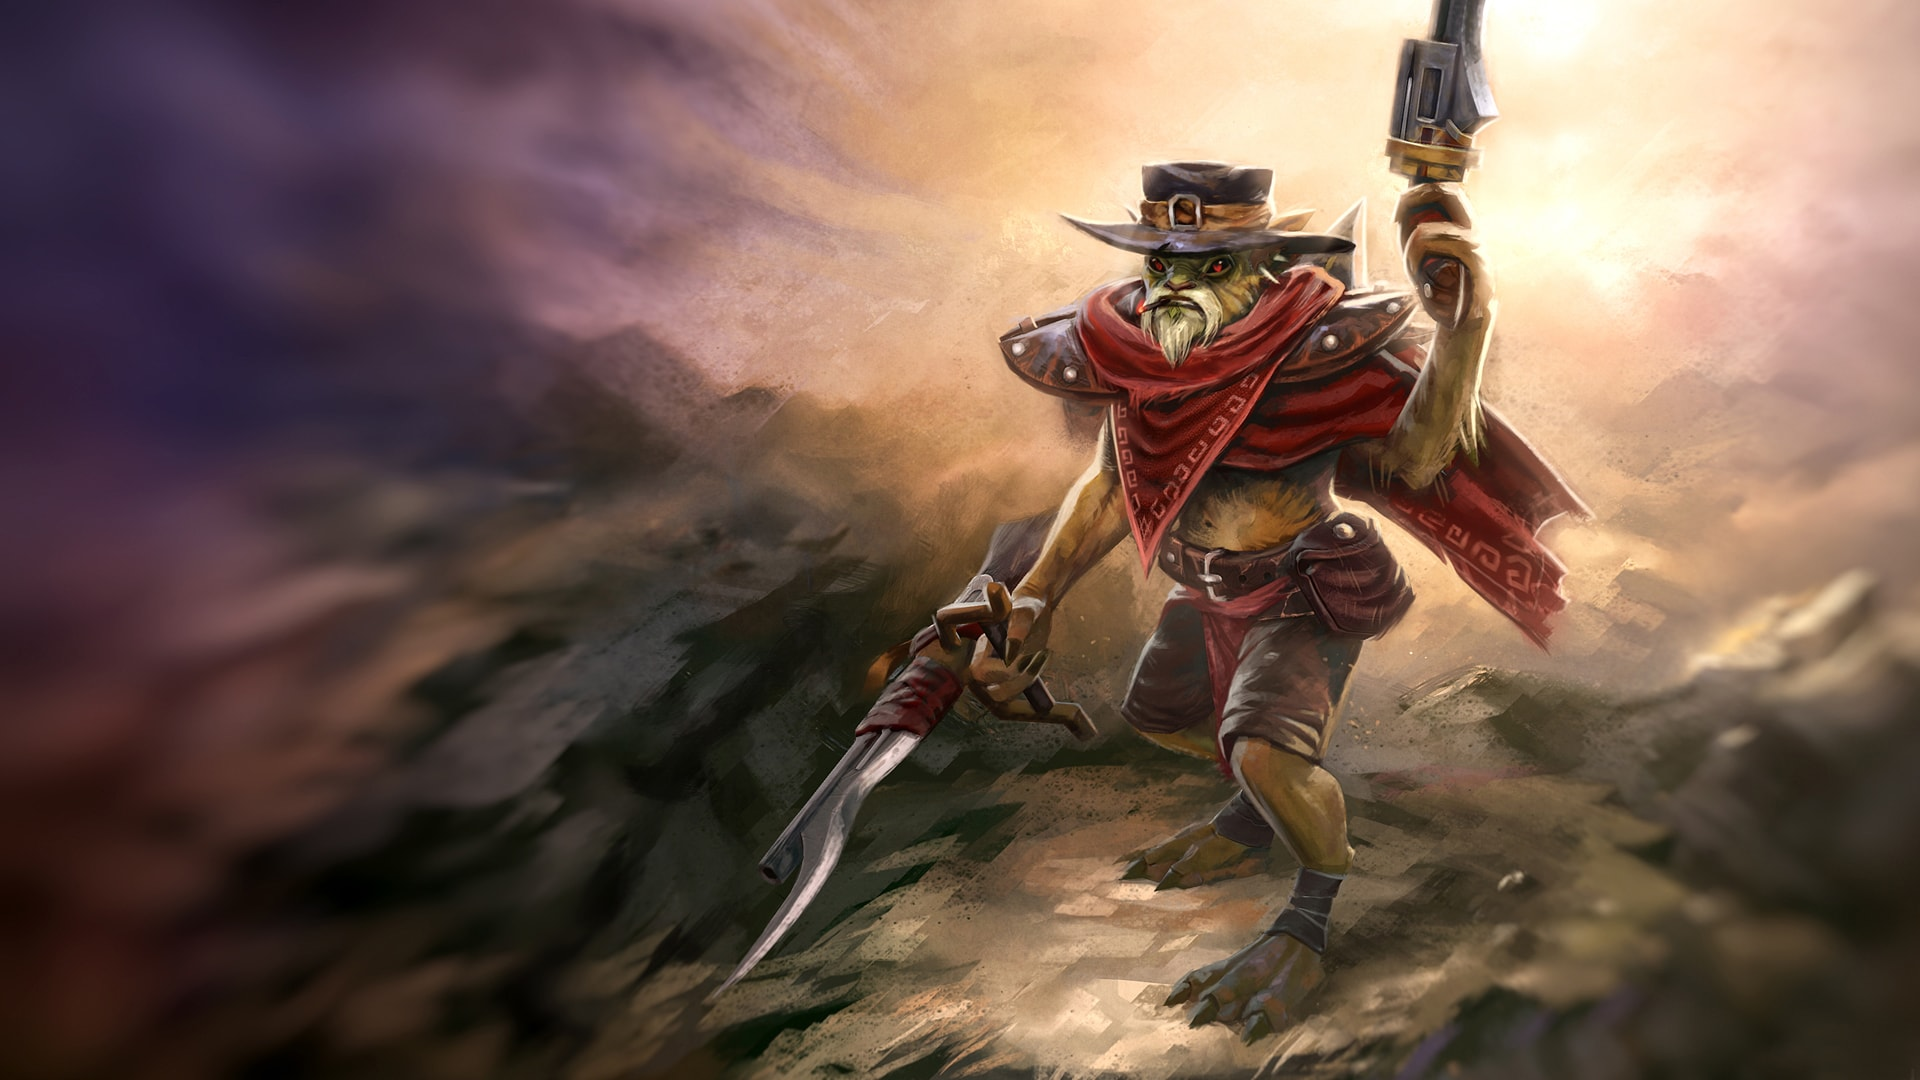 Dota2 : Bounty Hunter full hd wallpapers